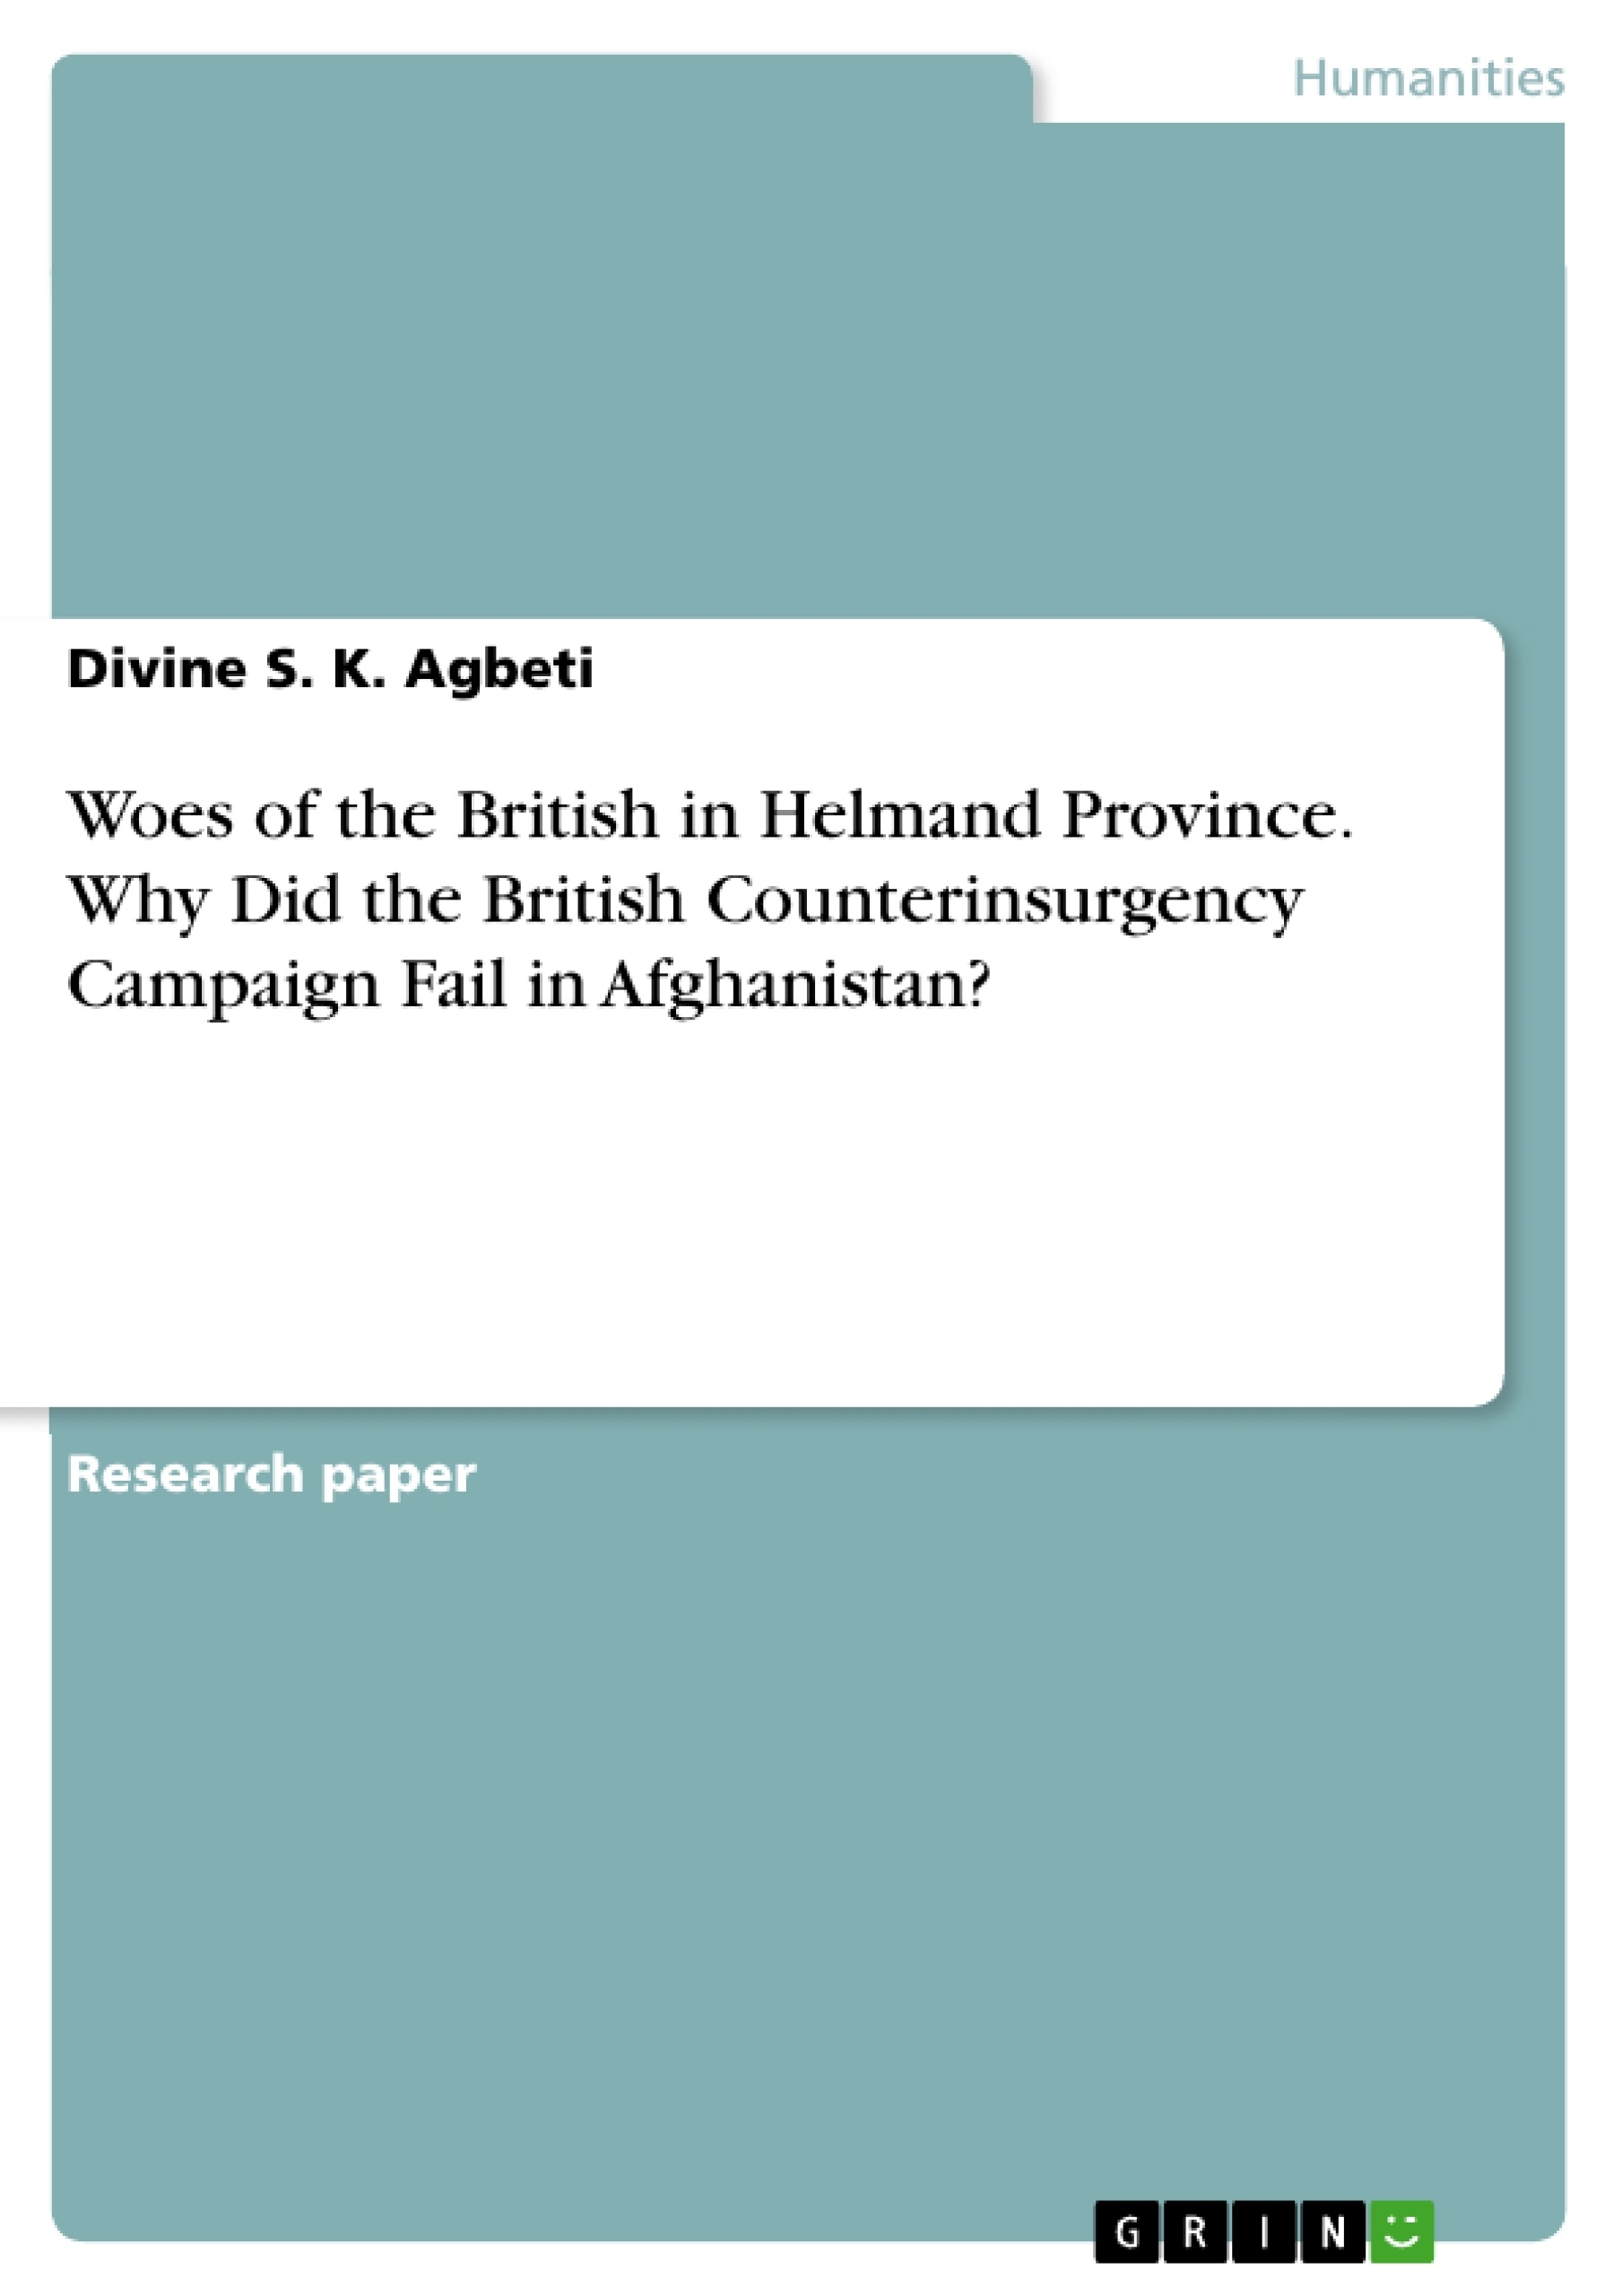 Title: Woes of the British in Helmand Province. Why Did the British Counterinsurgency Campaign Fail in Afghanistan?